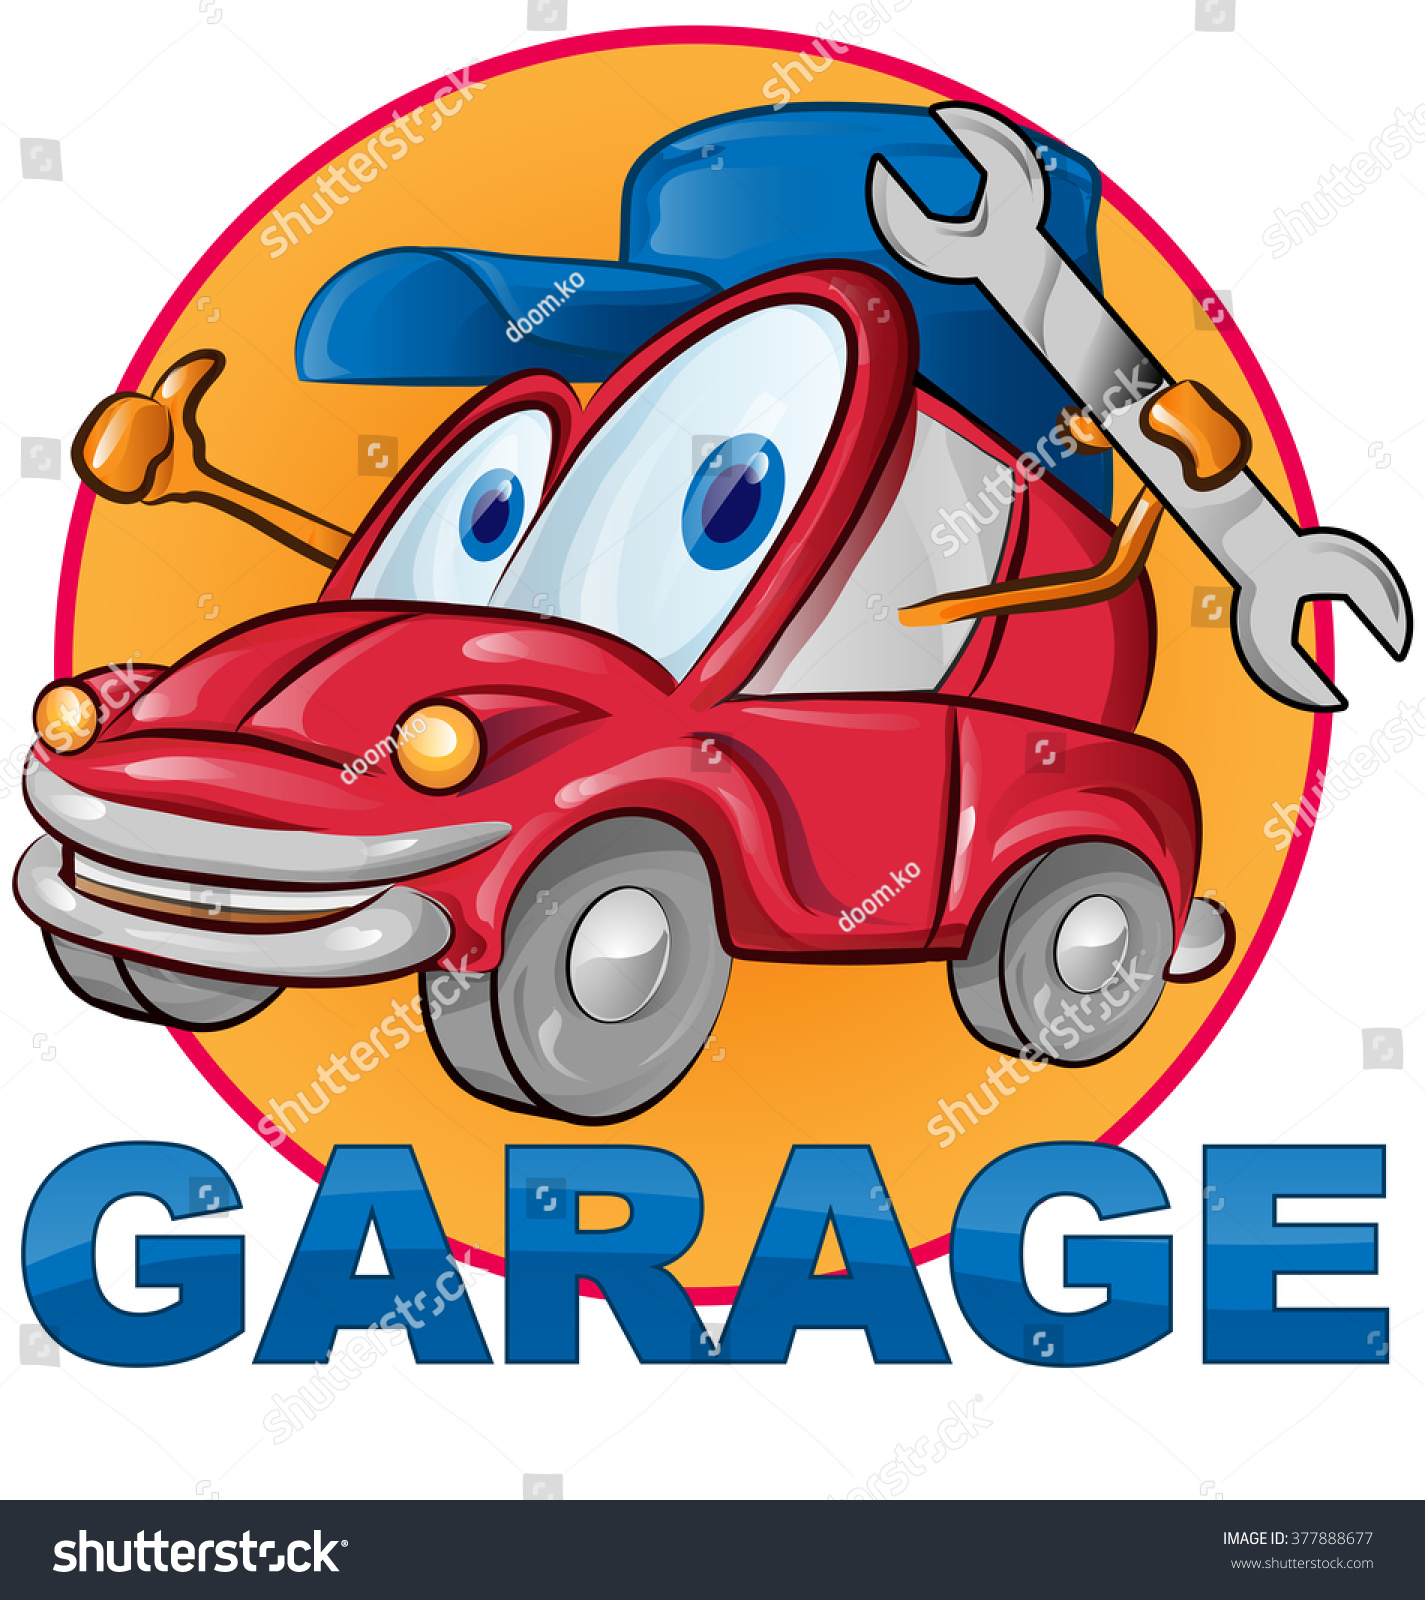 Car garage symbol cartoon on white background stock vector for Garage happy car